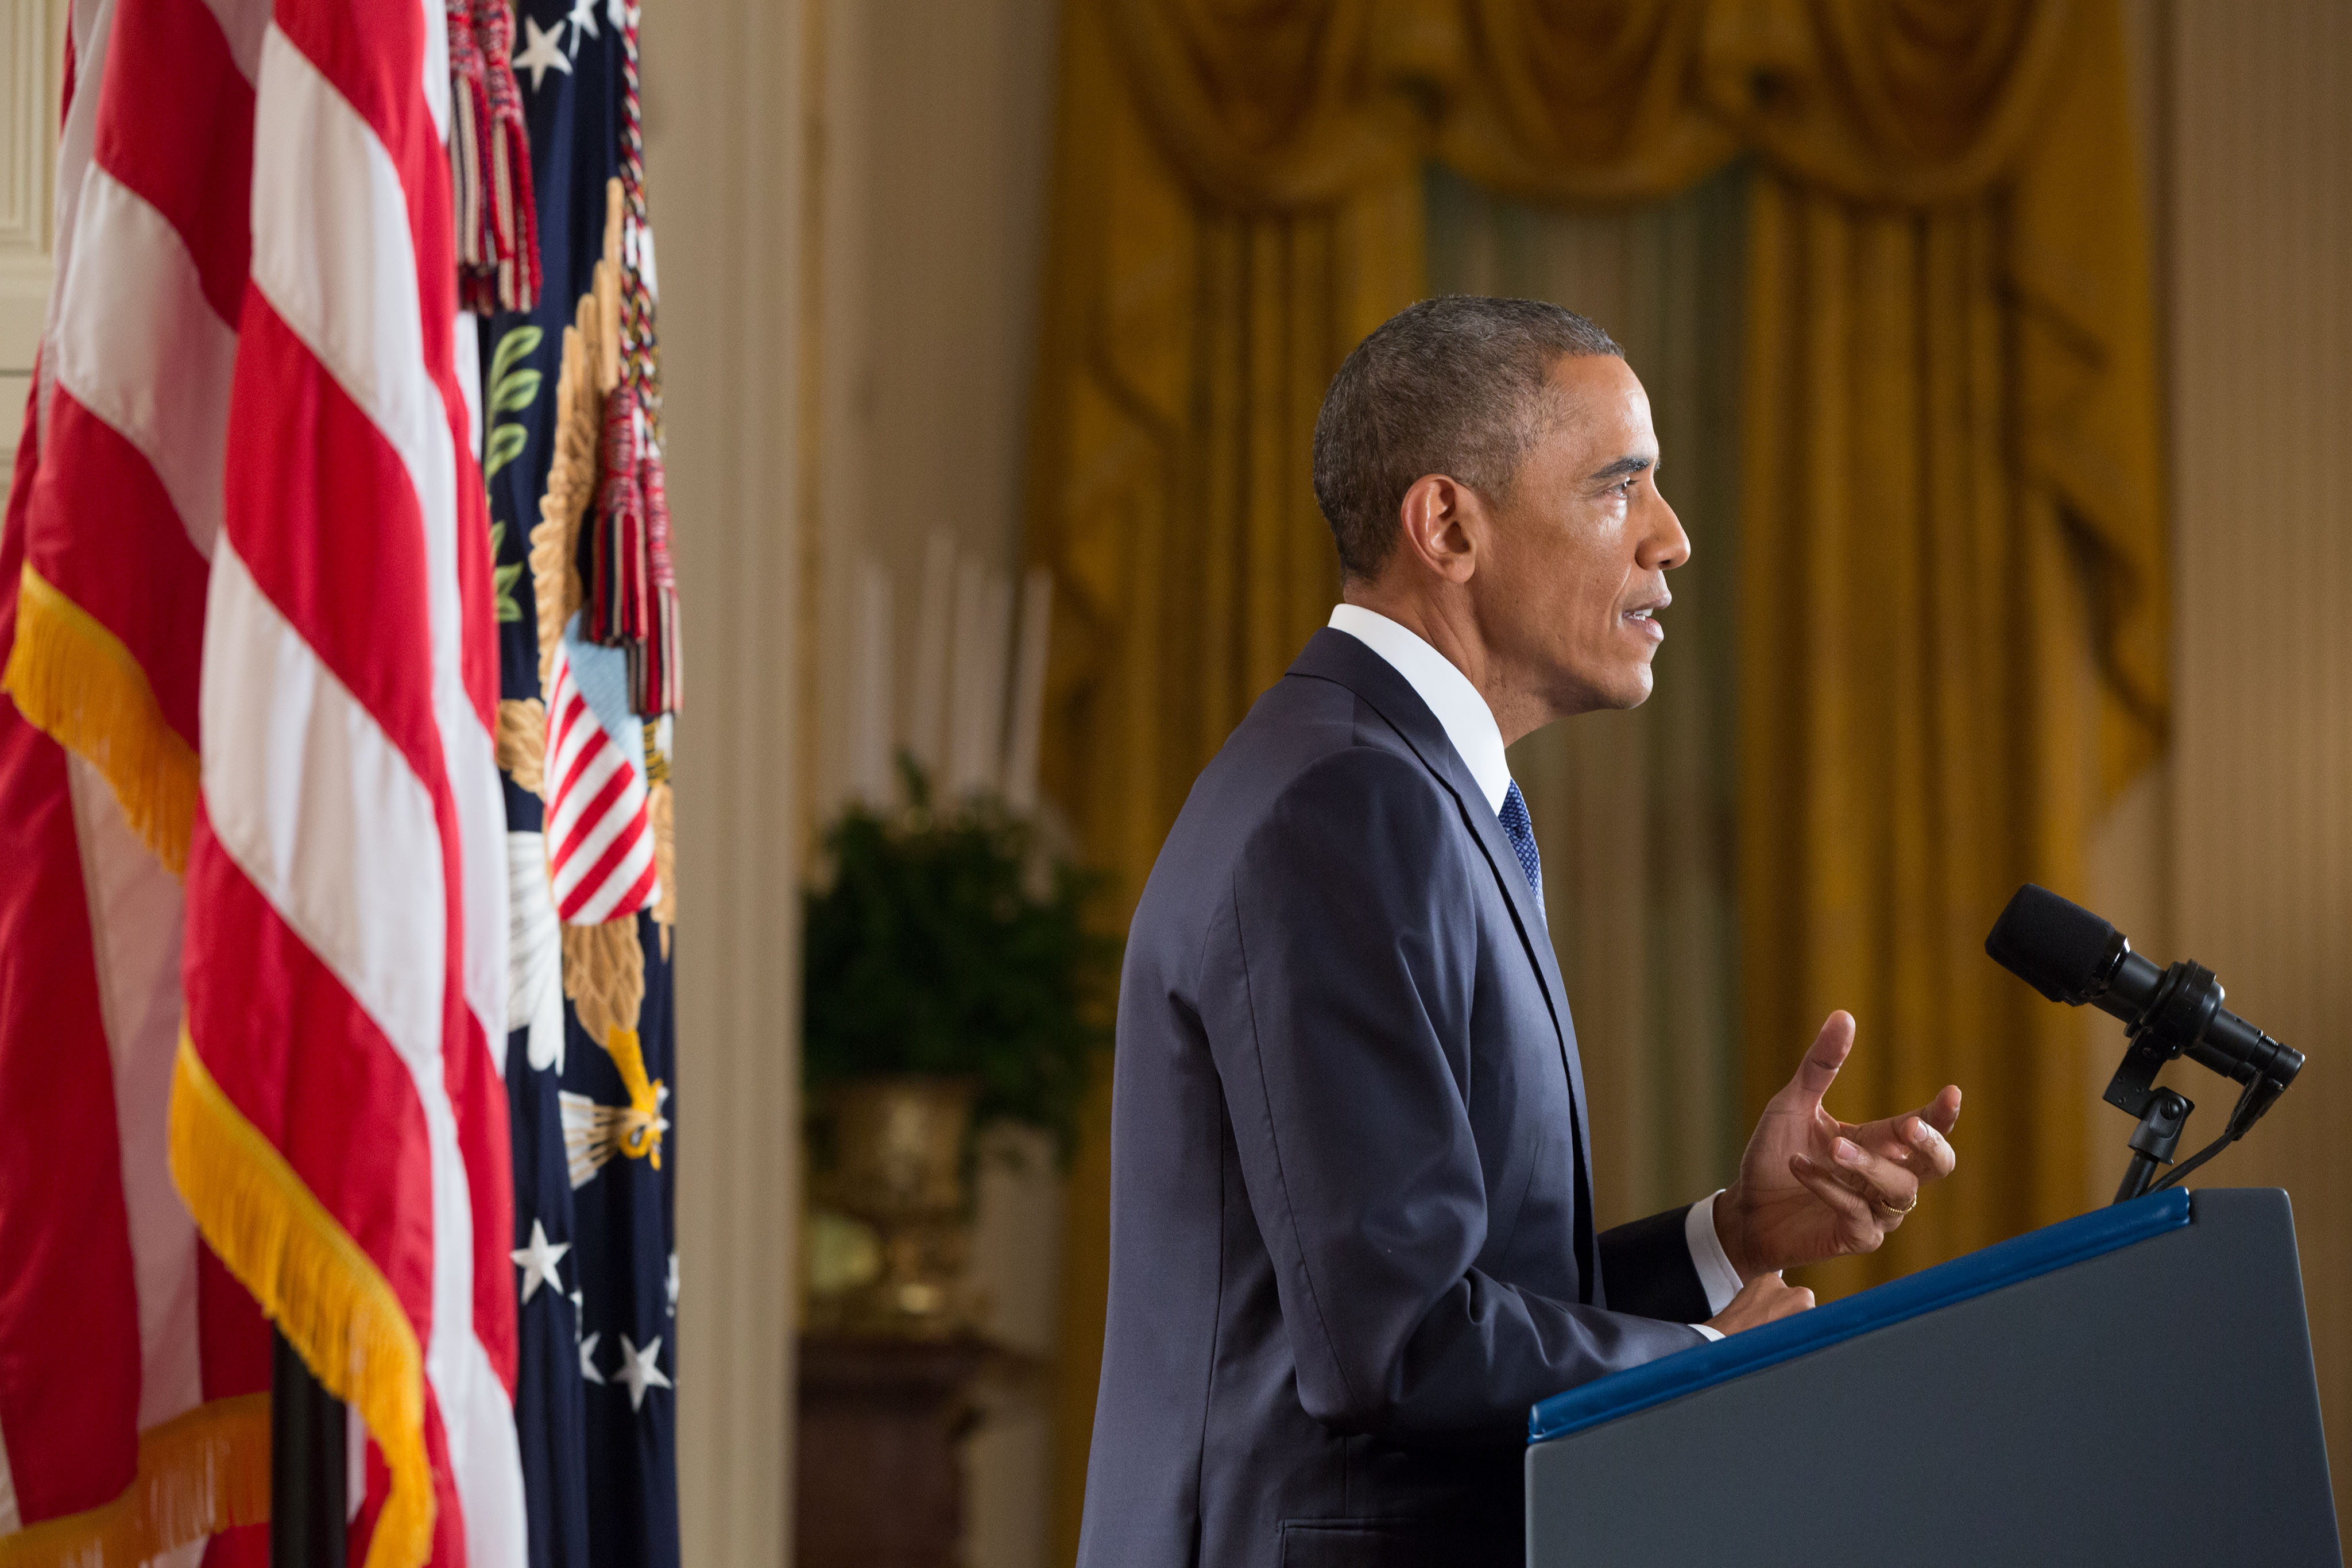 President Obama delivers an address to the nation on immigration, Nov. 20, 2014